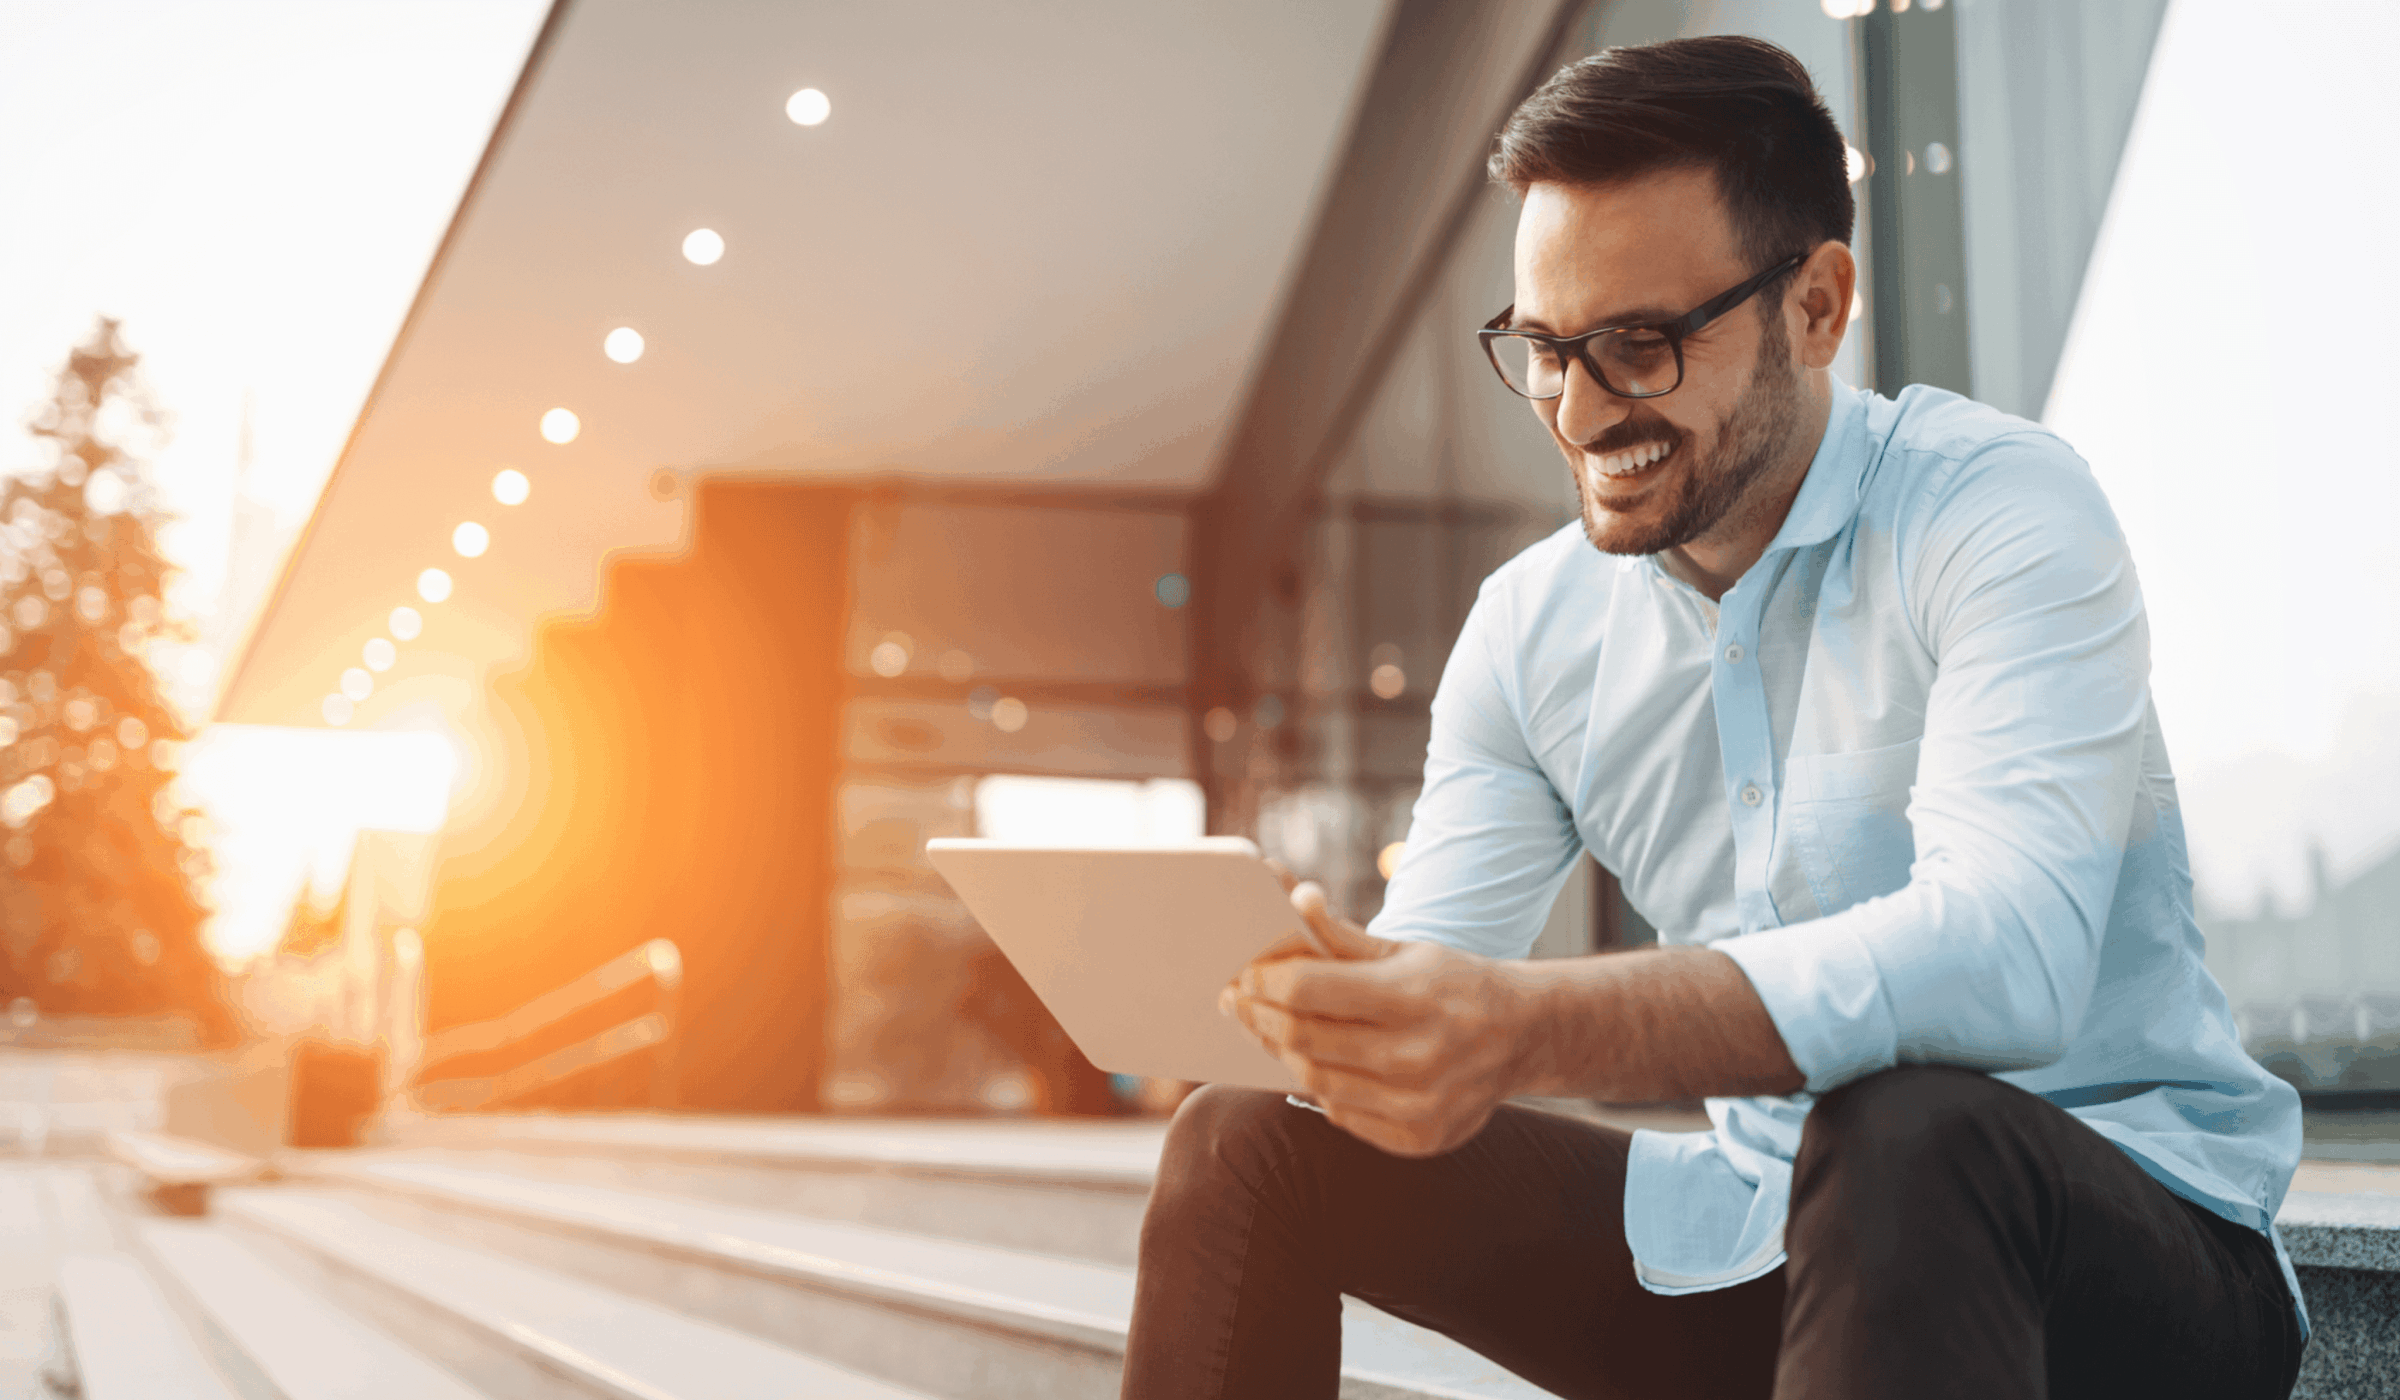 Business man sitting on stairs outside on tablet smiling at sunset